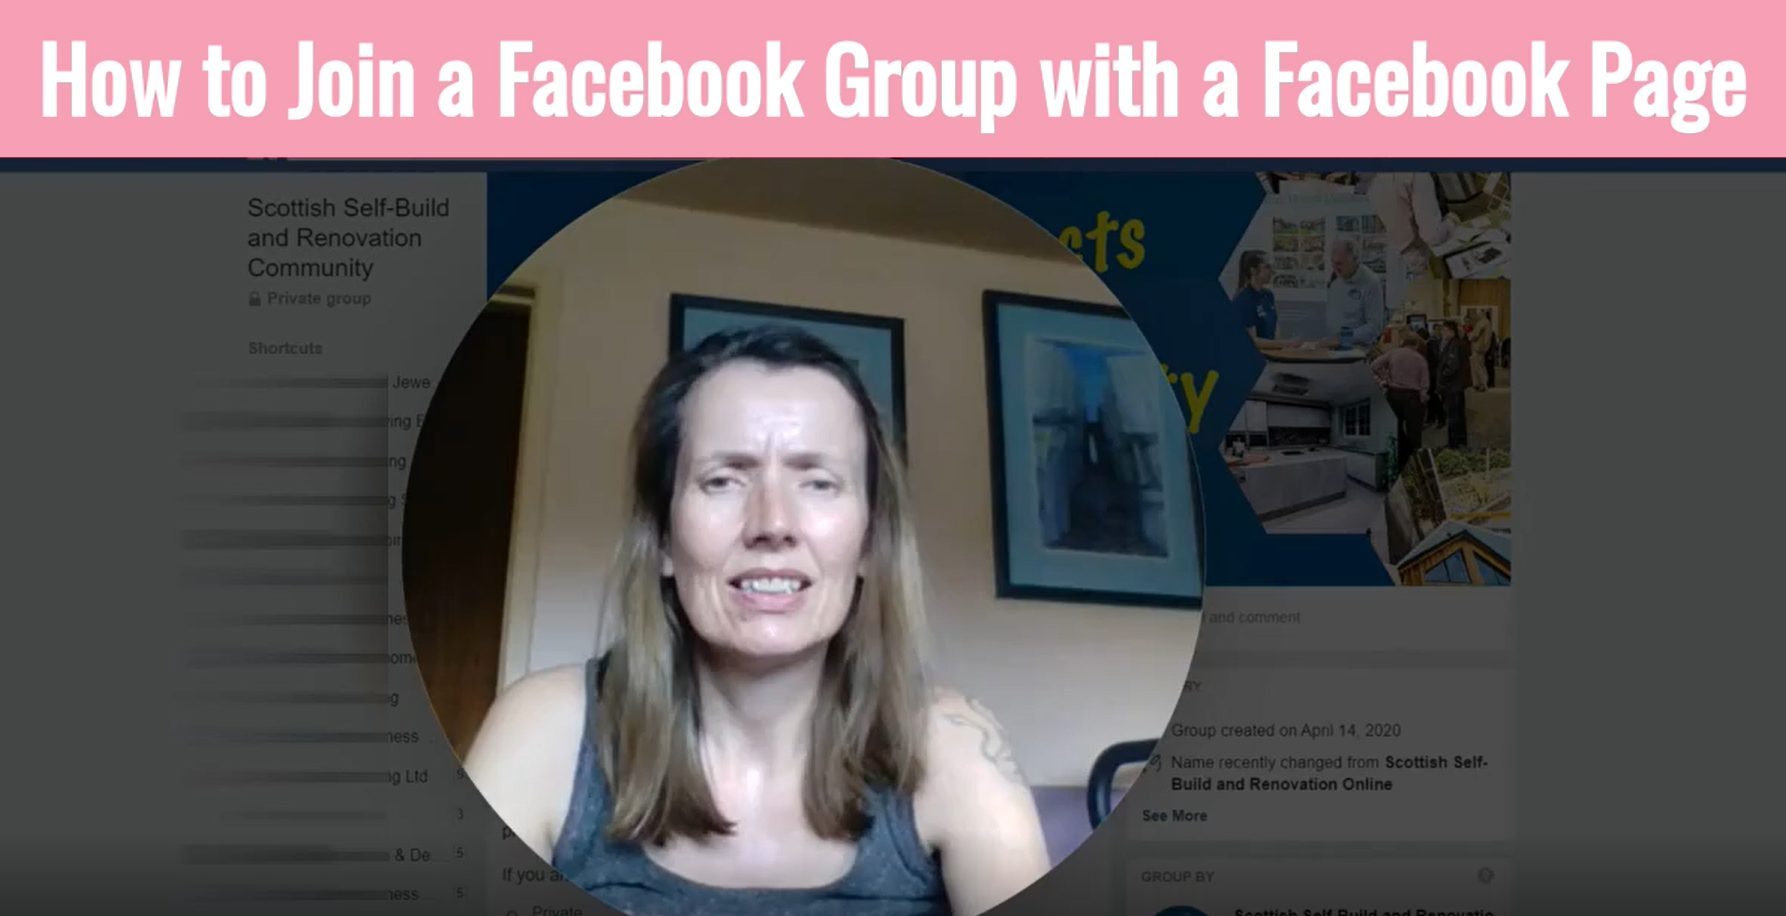 How to join a Facebook Group with a Facebook Page